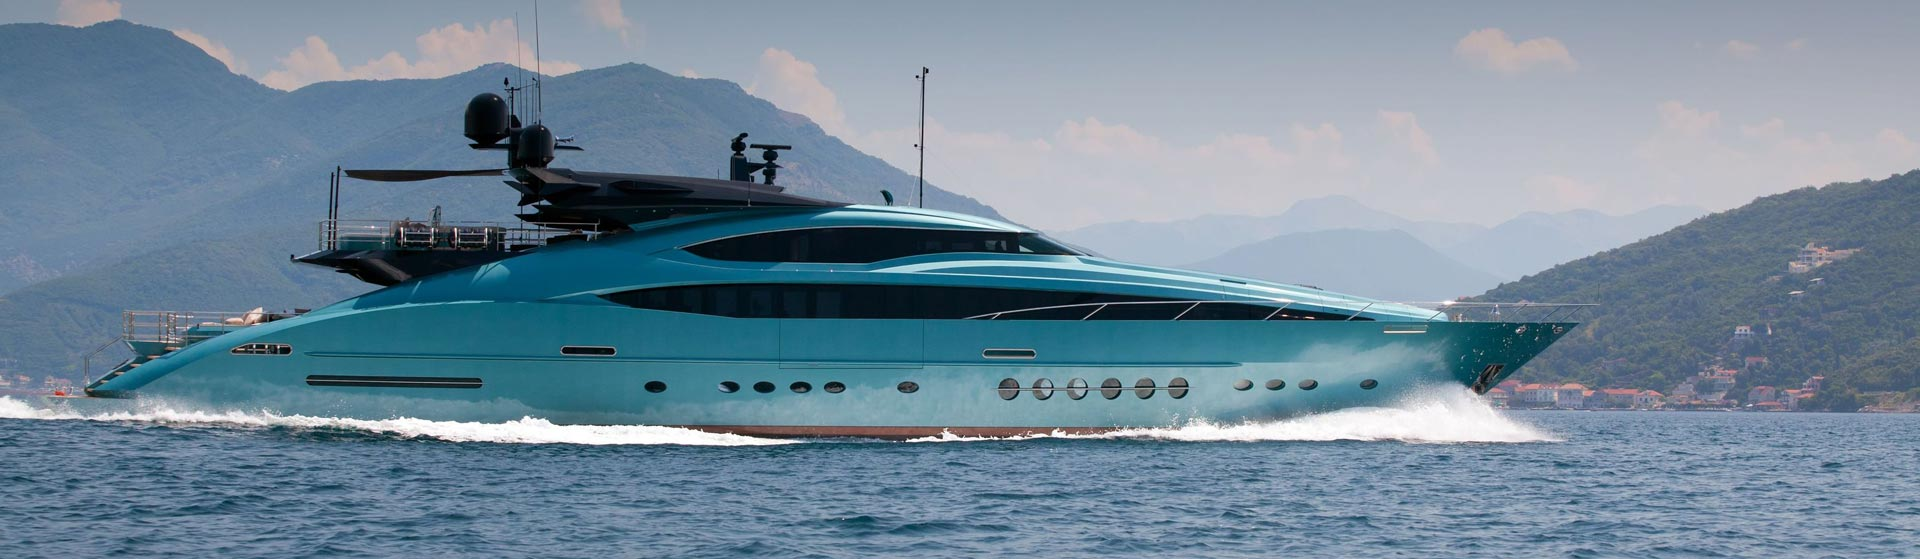 Superyacht Charter Specialists